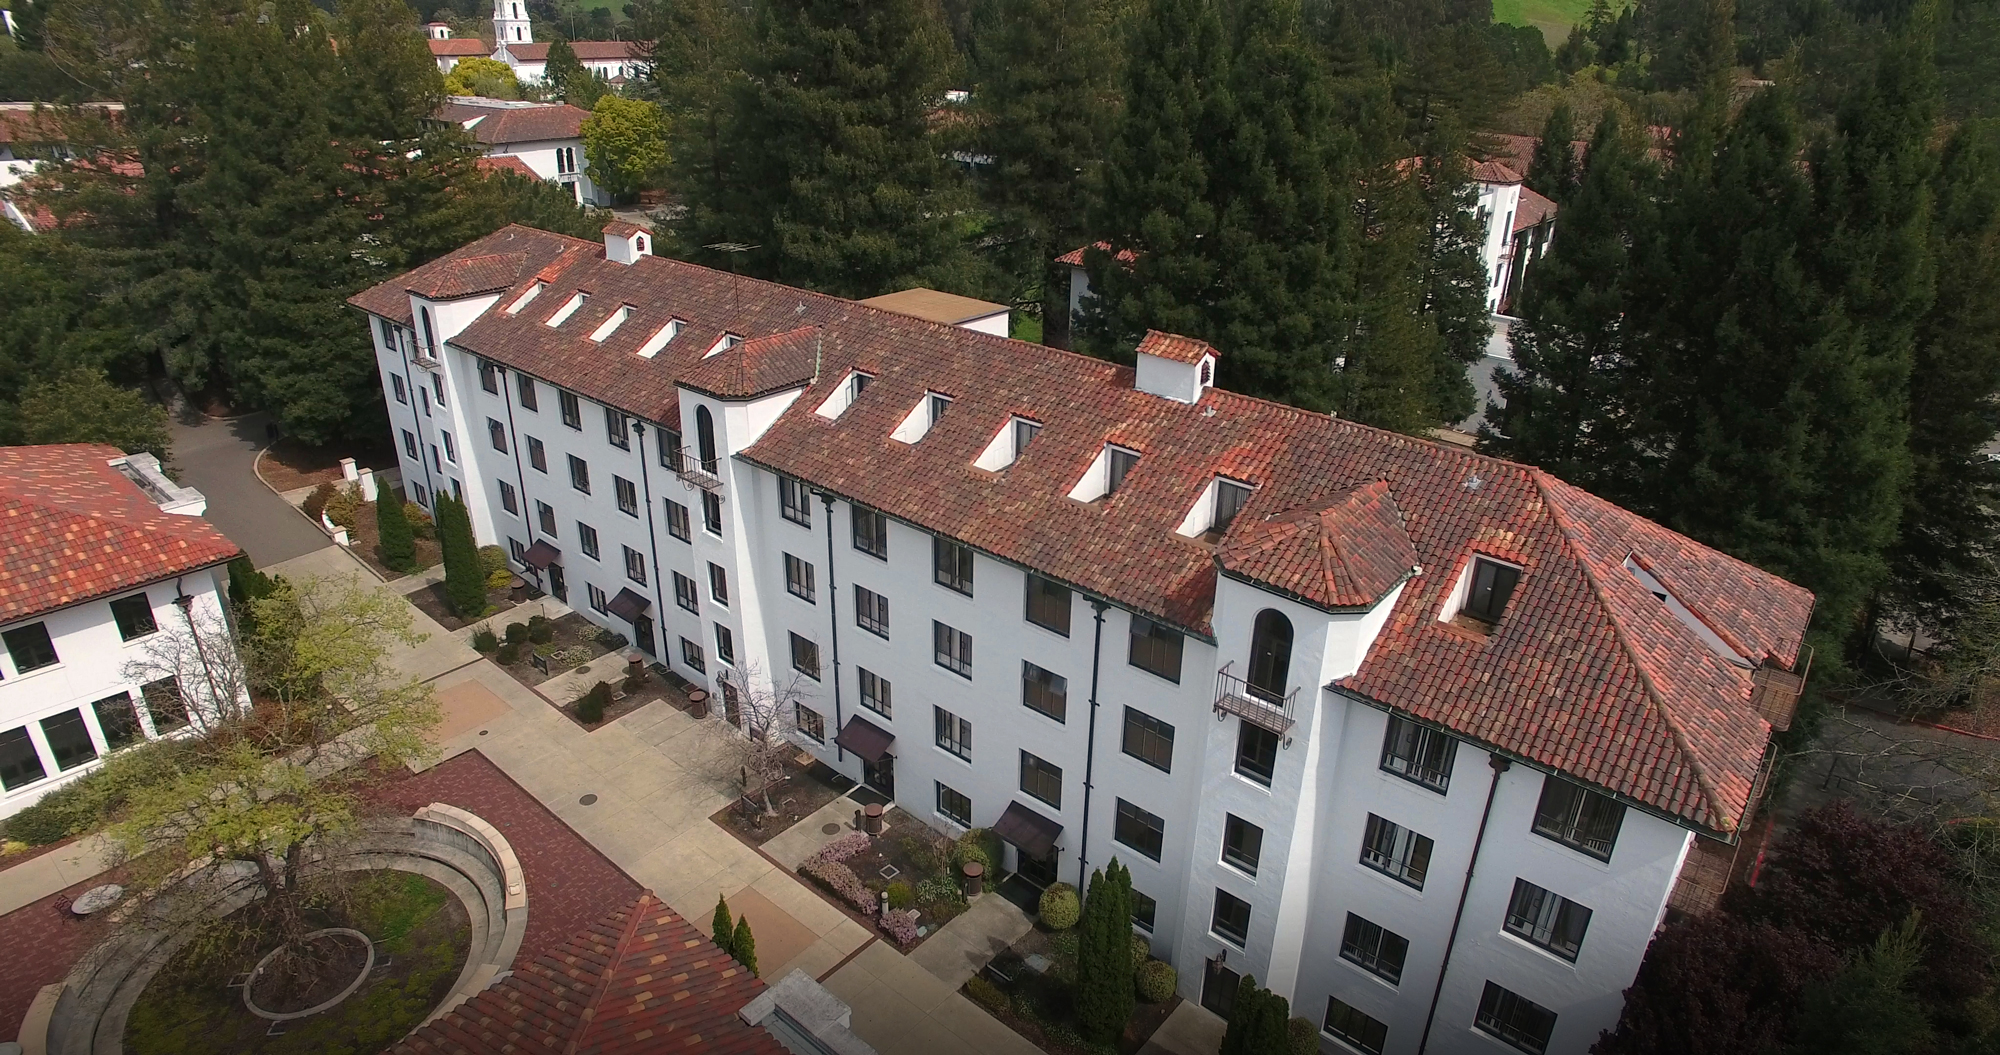 Augustine dorm from a birds eye view